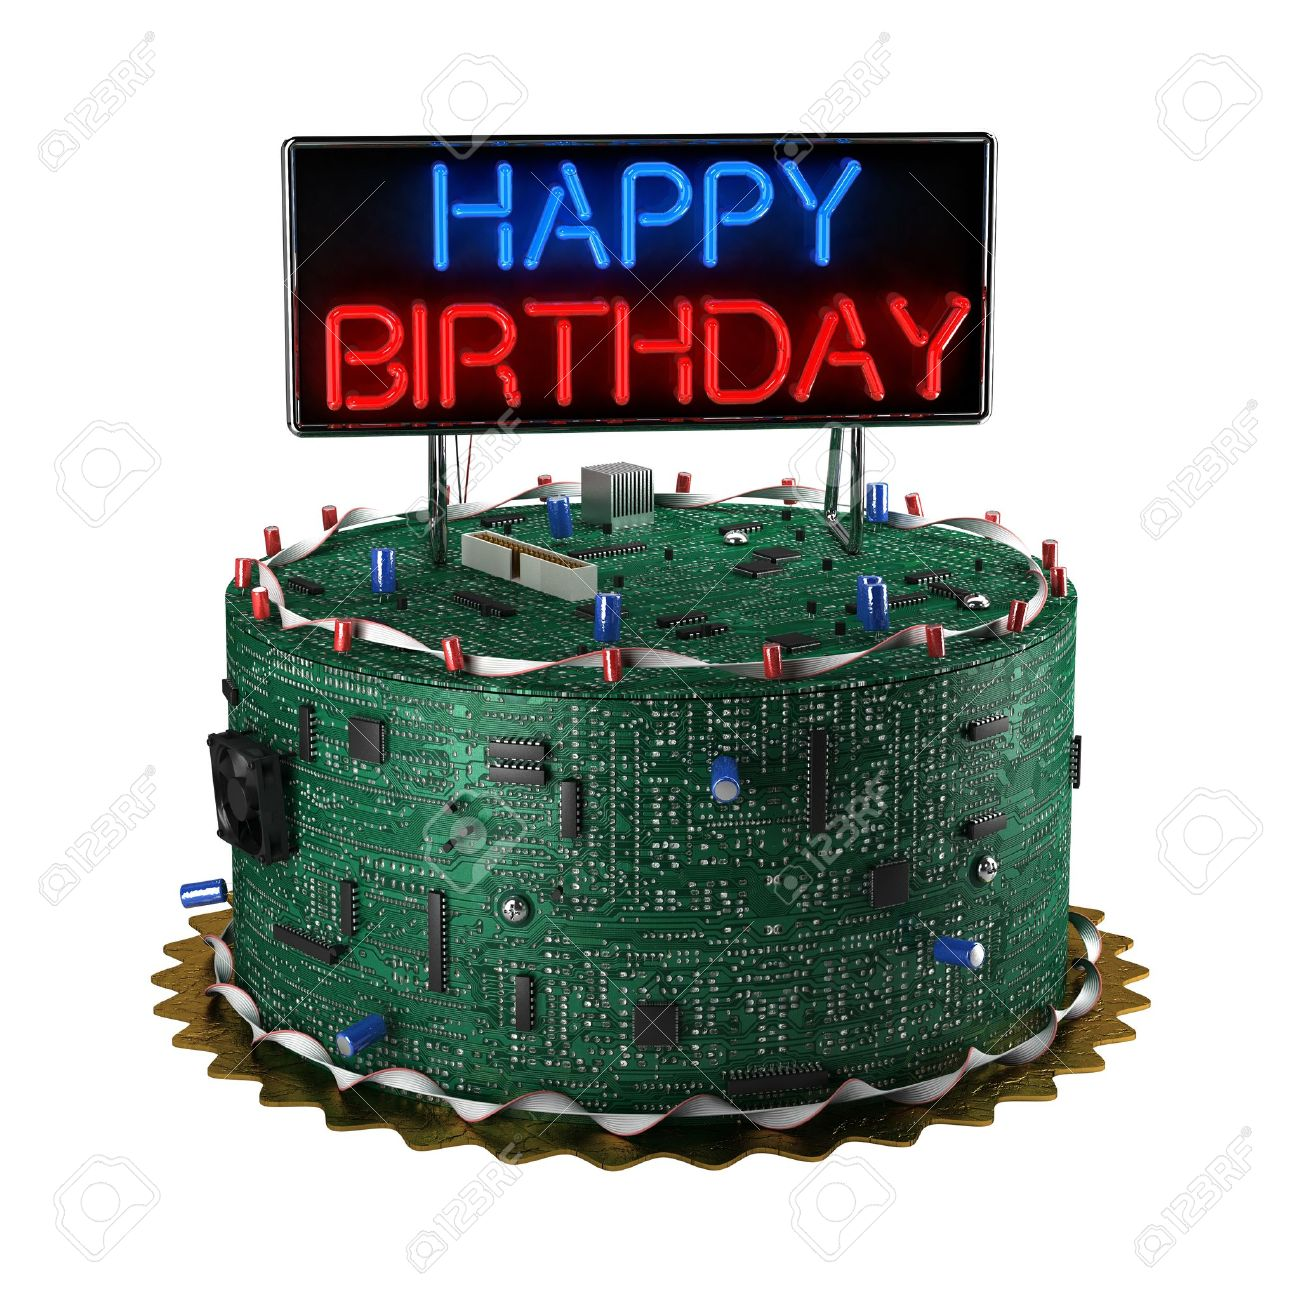 Remarkable Fun Birthday Cake For Geeks Isolated Over White Background Stock Funny Birthday Cards Online Inifofree Goldxyz